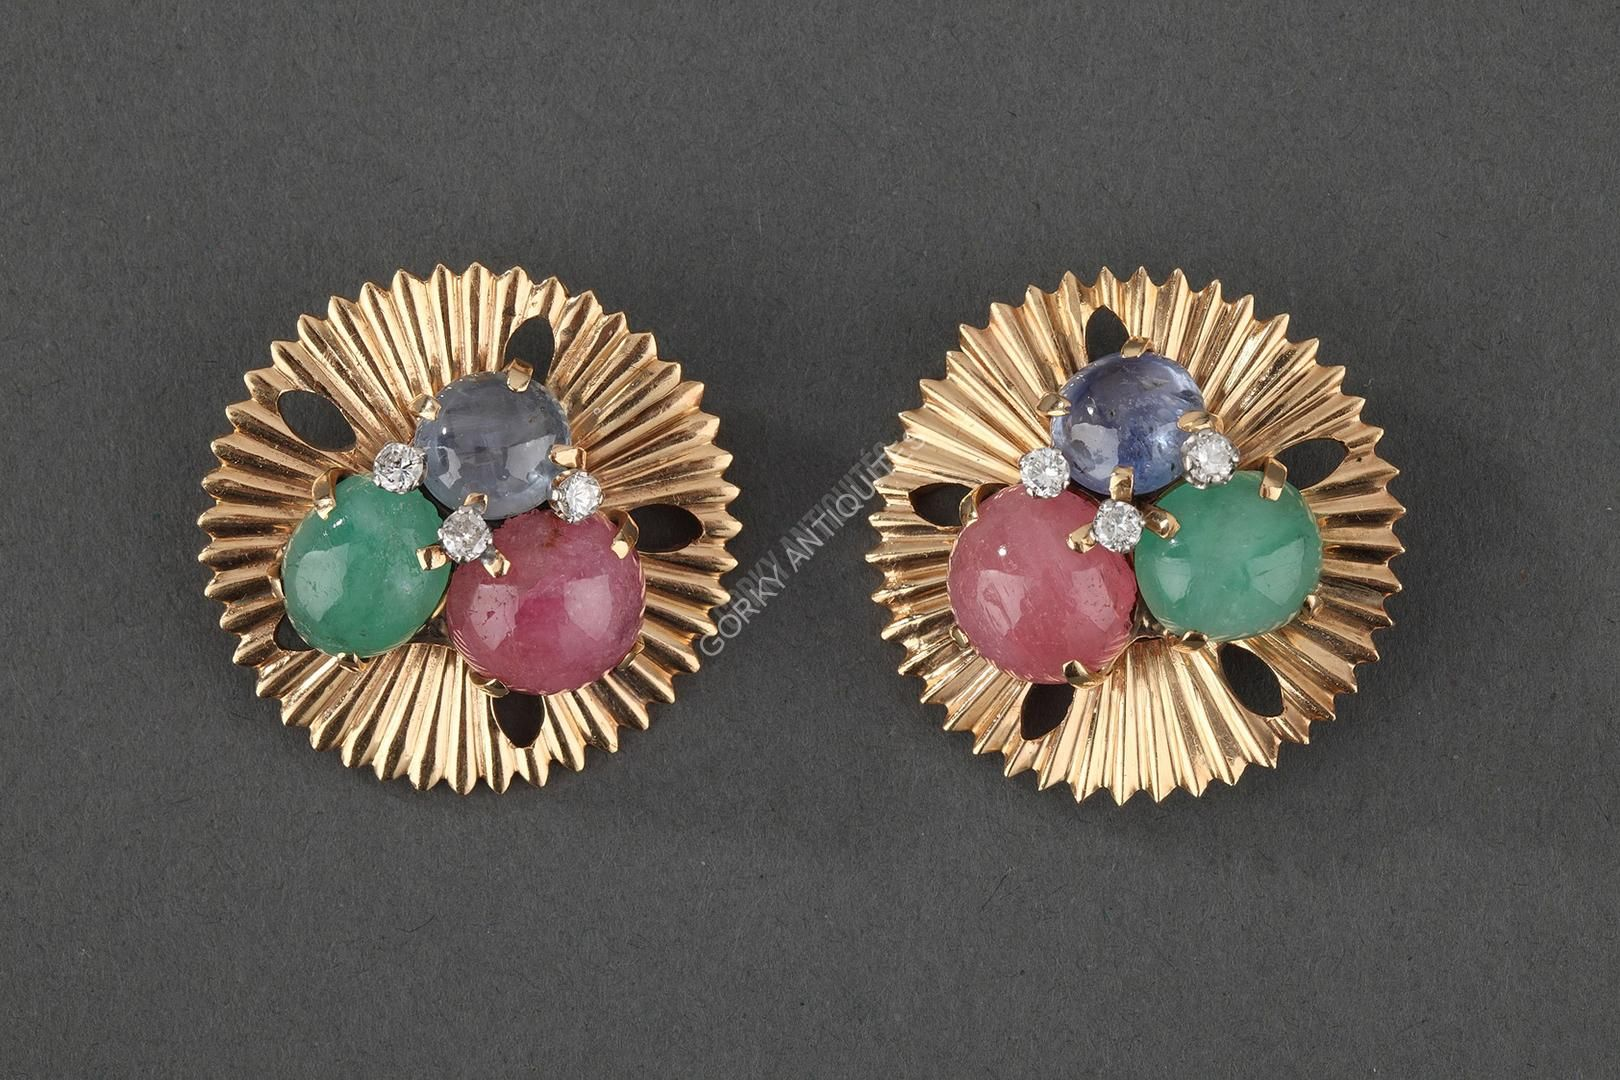 awesome SEAMAN SCHEPPS - 2 Broches en or, saphirs, émeraudes, quartz, diamants - Vers 1960